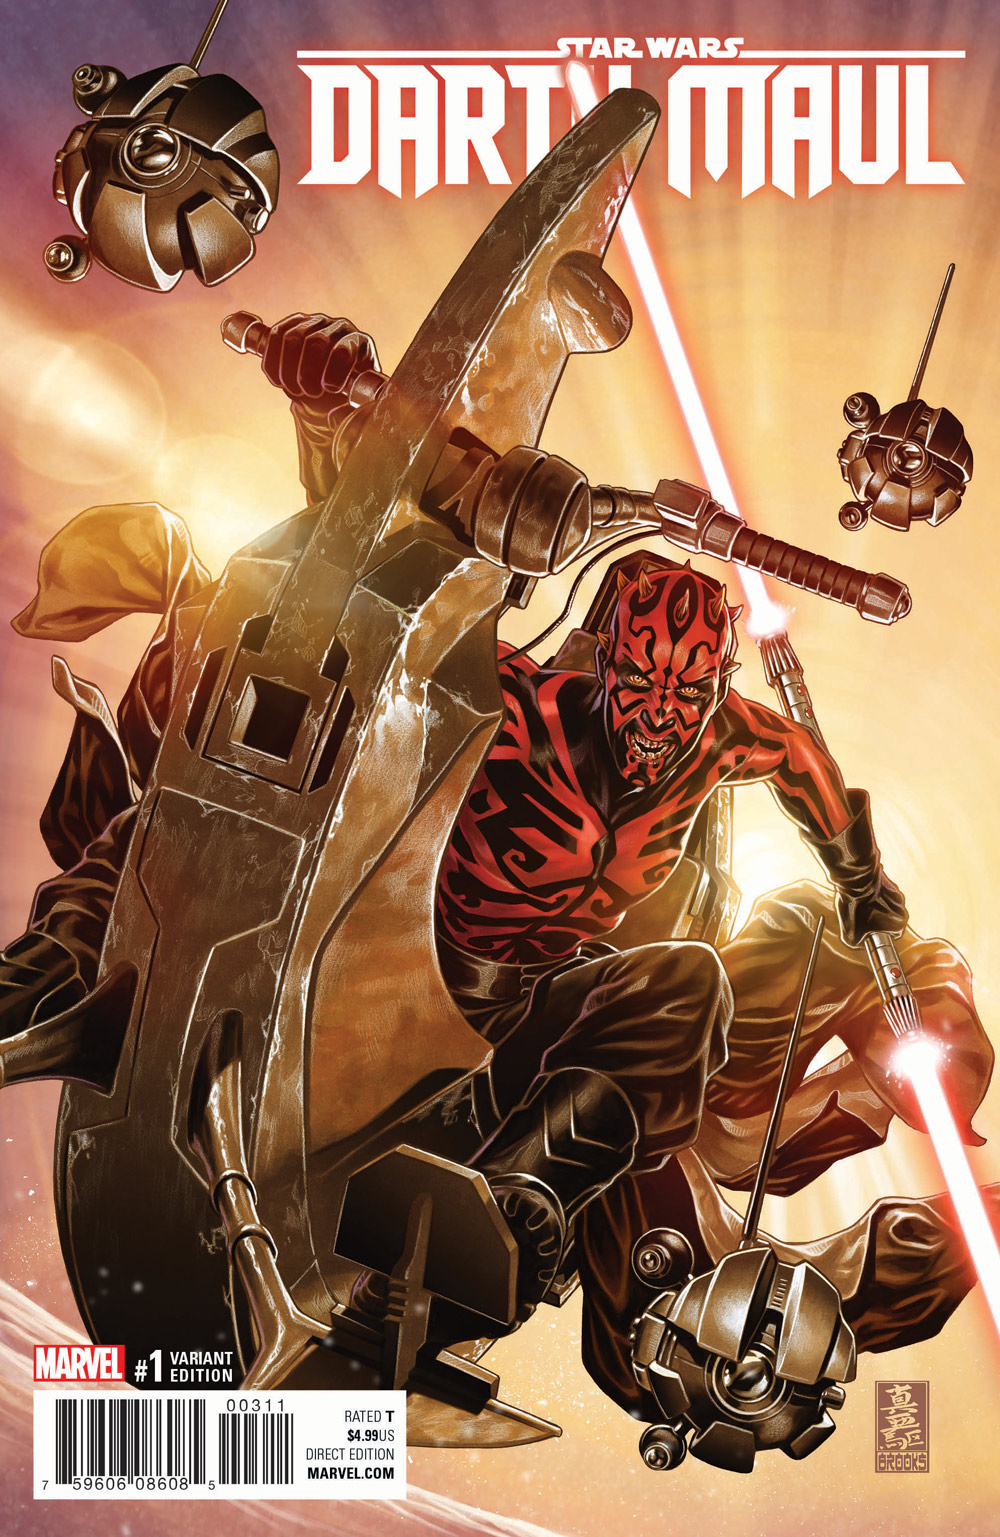 Darth-Maul-Star-Wars-Mark-Brooks-cover